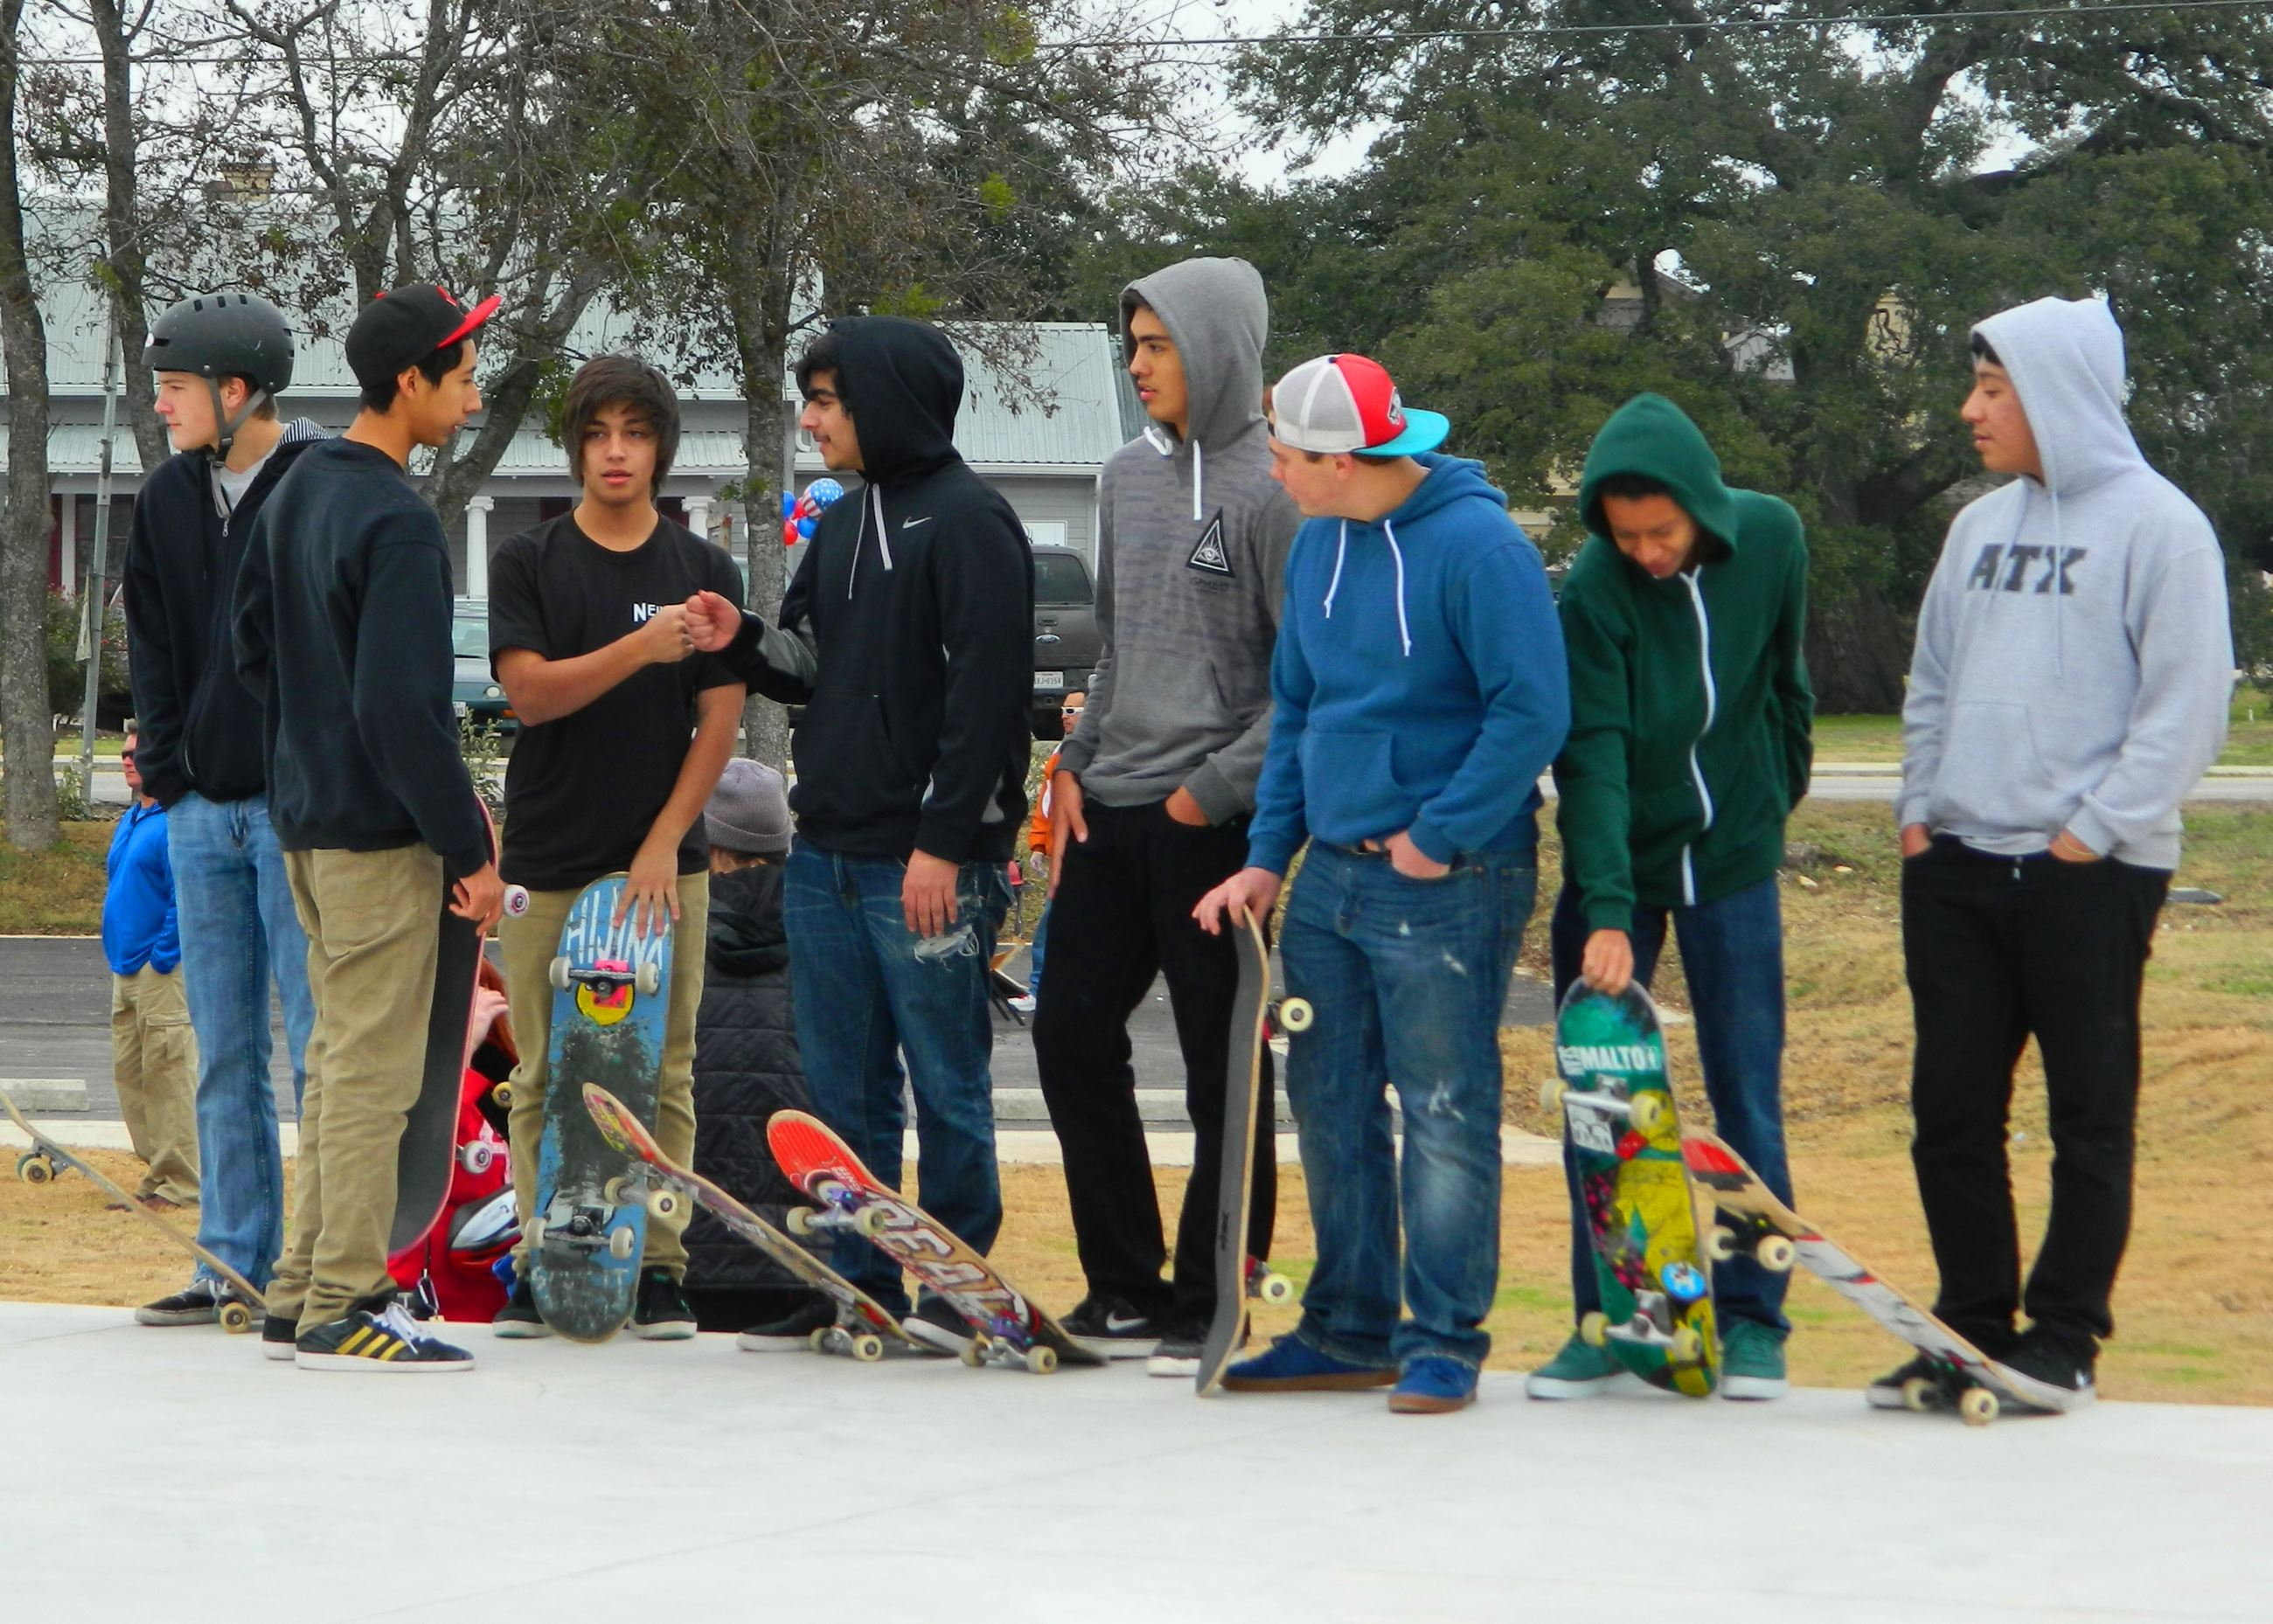 Boys waiting for turn to skate